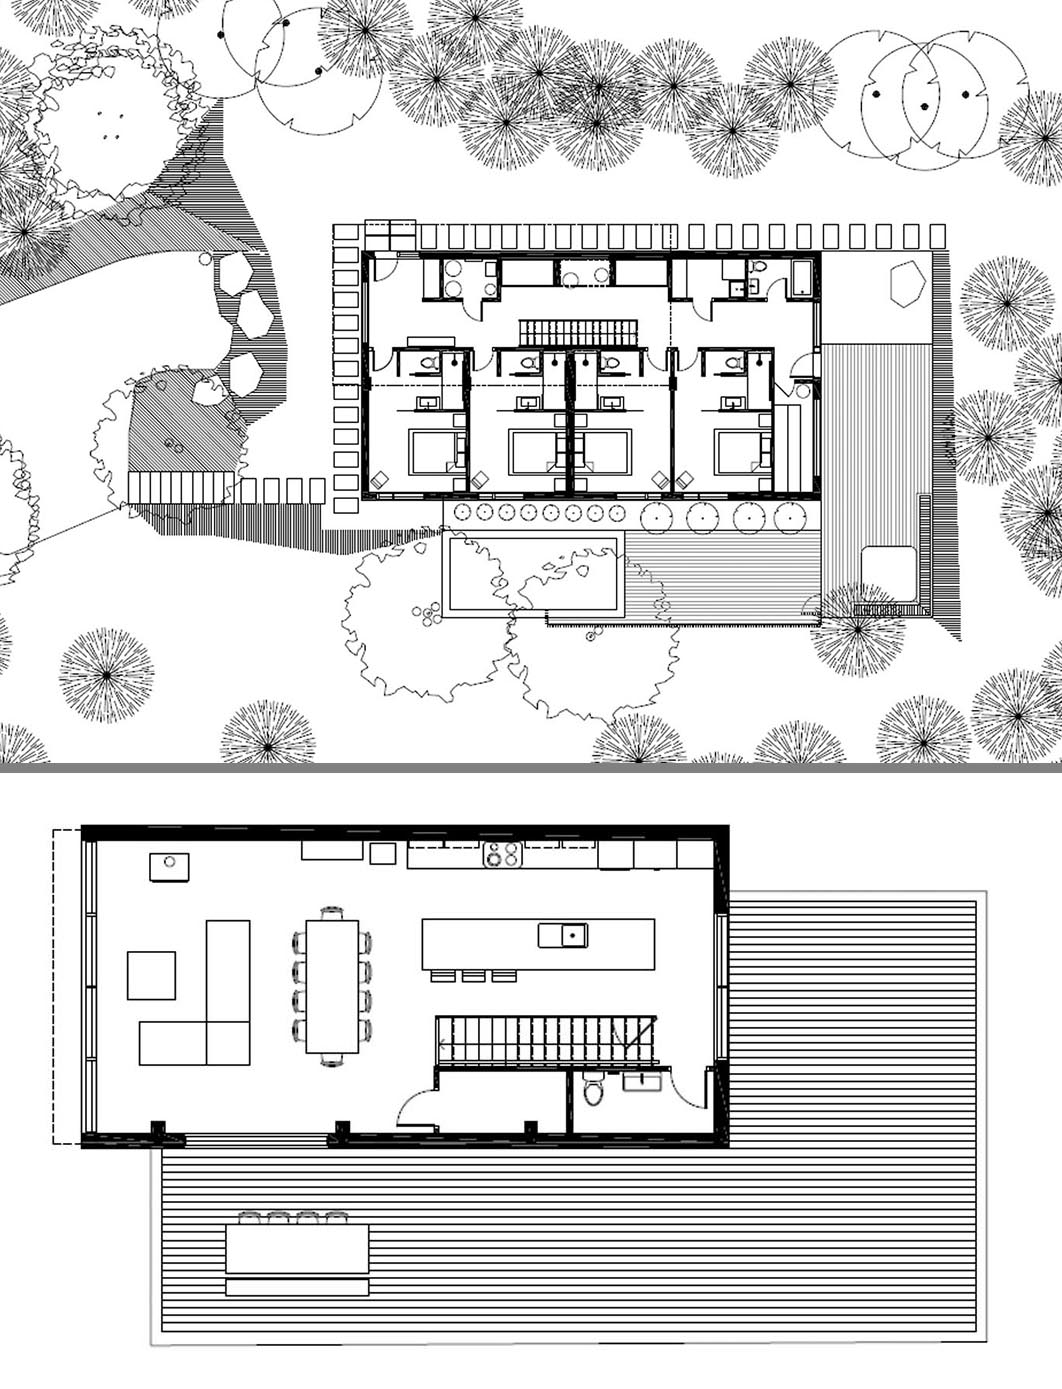 The floor plan of a modern home with the social areas of the house on the upper floor.